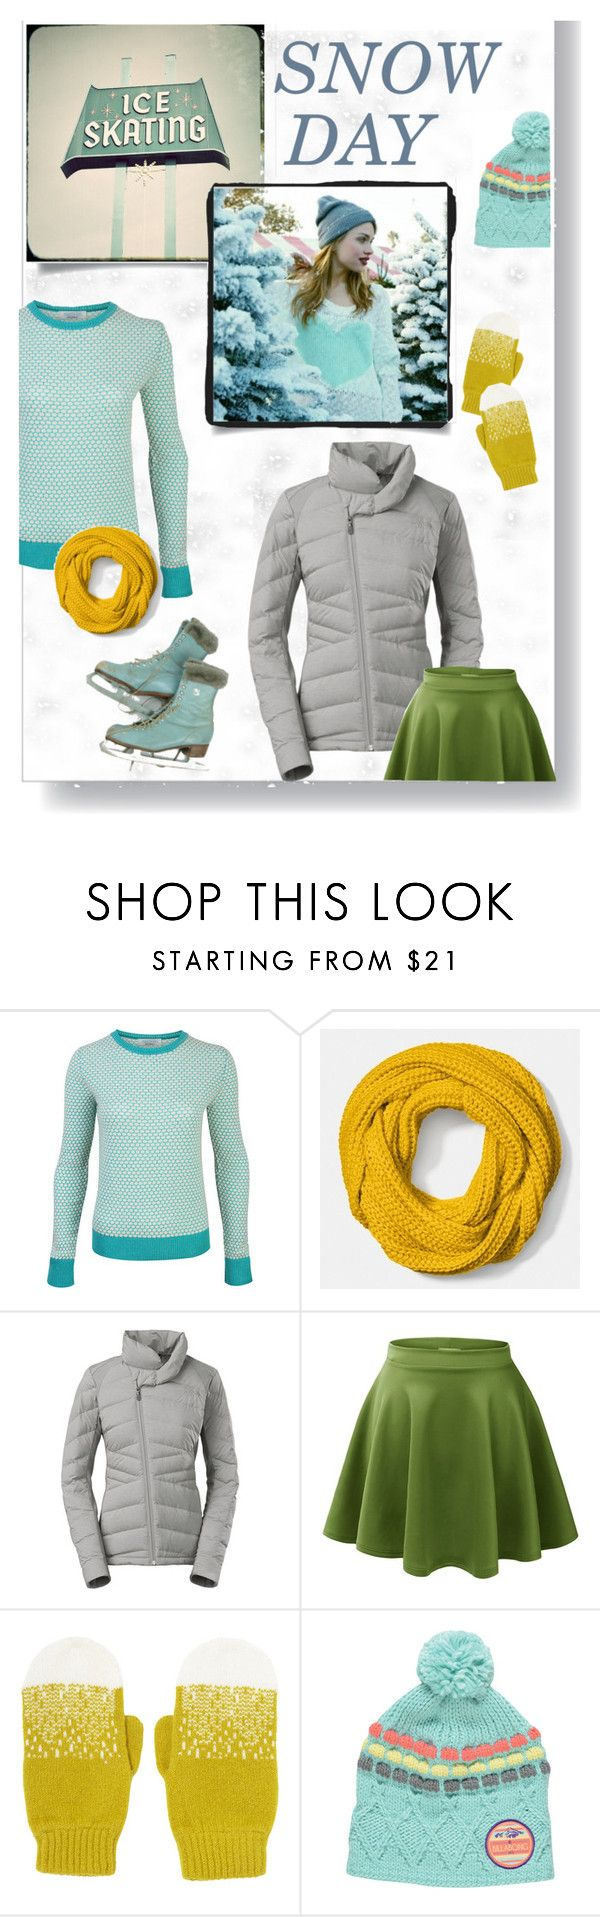 """Skater Style"" by the-kwas ❤ liked on Polyvore featuring moda, Coach, The North Face, Donna Wilson e Billabong"